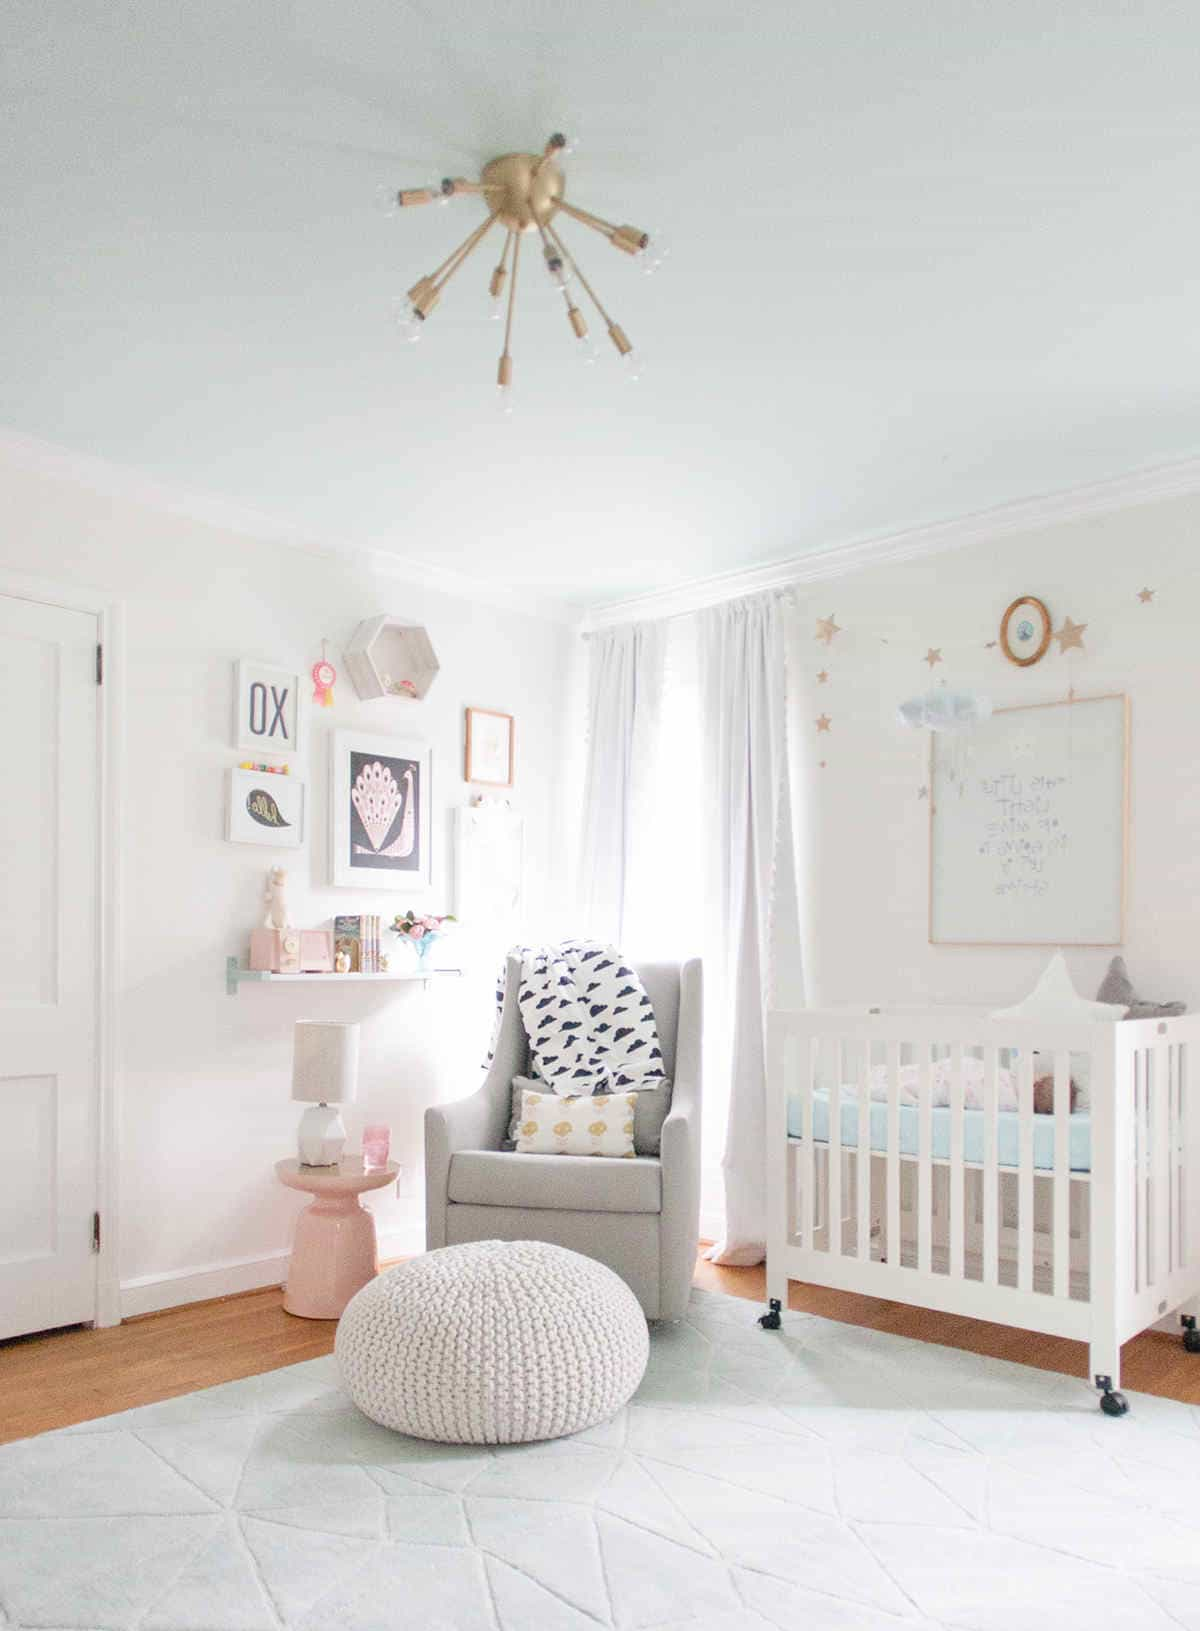 White Theme Minimalist Nursery Bedroom (Image 9 of 9)